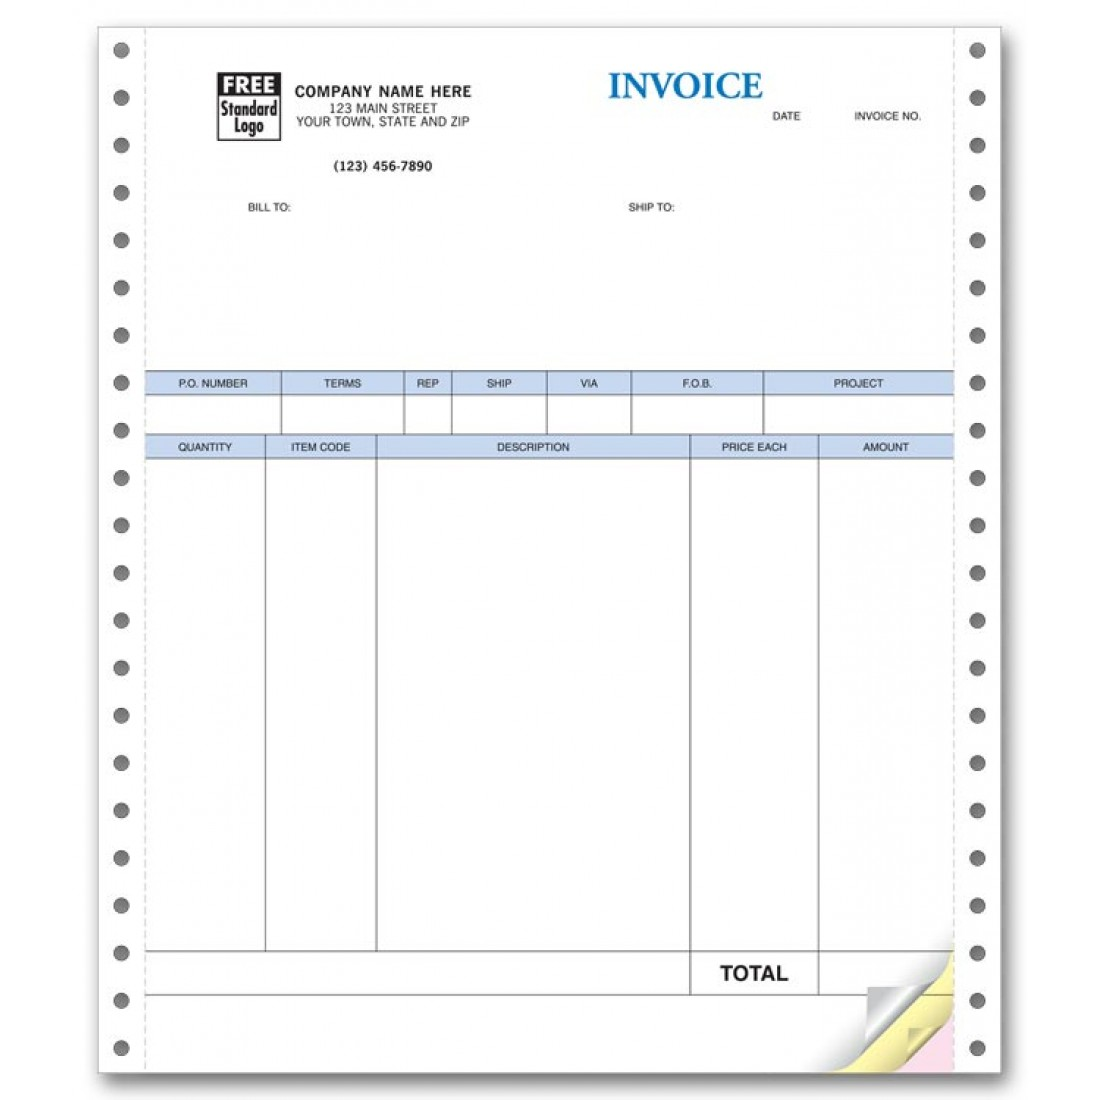 Continuous Product Invoice compatible with QuickBooks